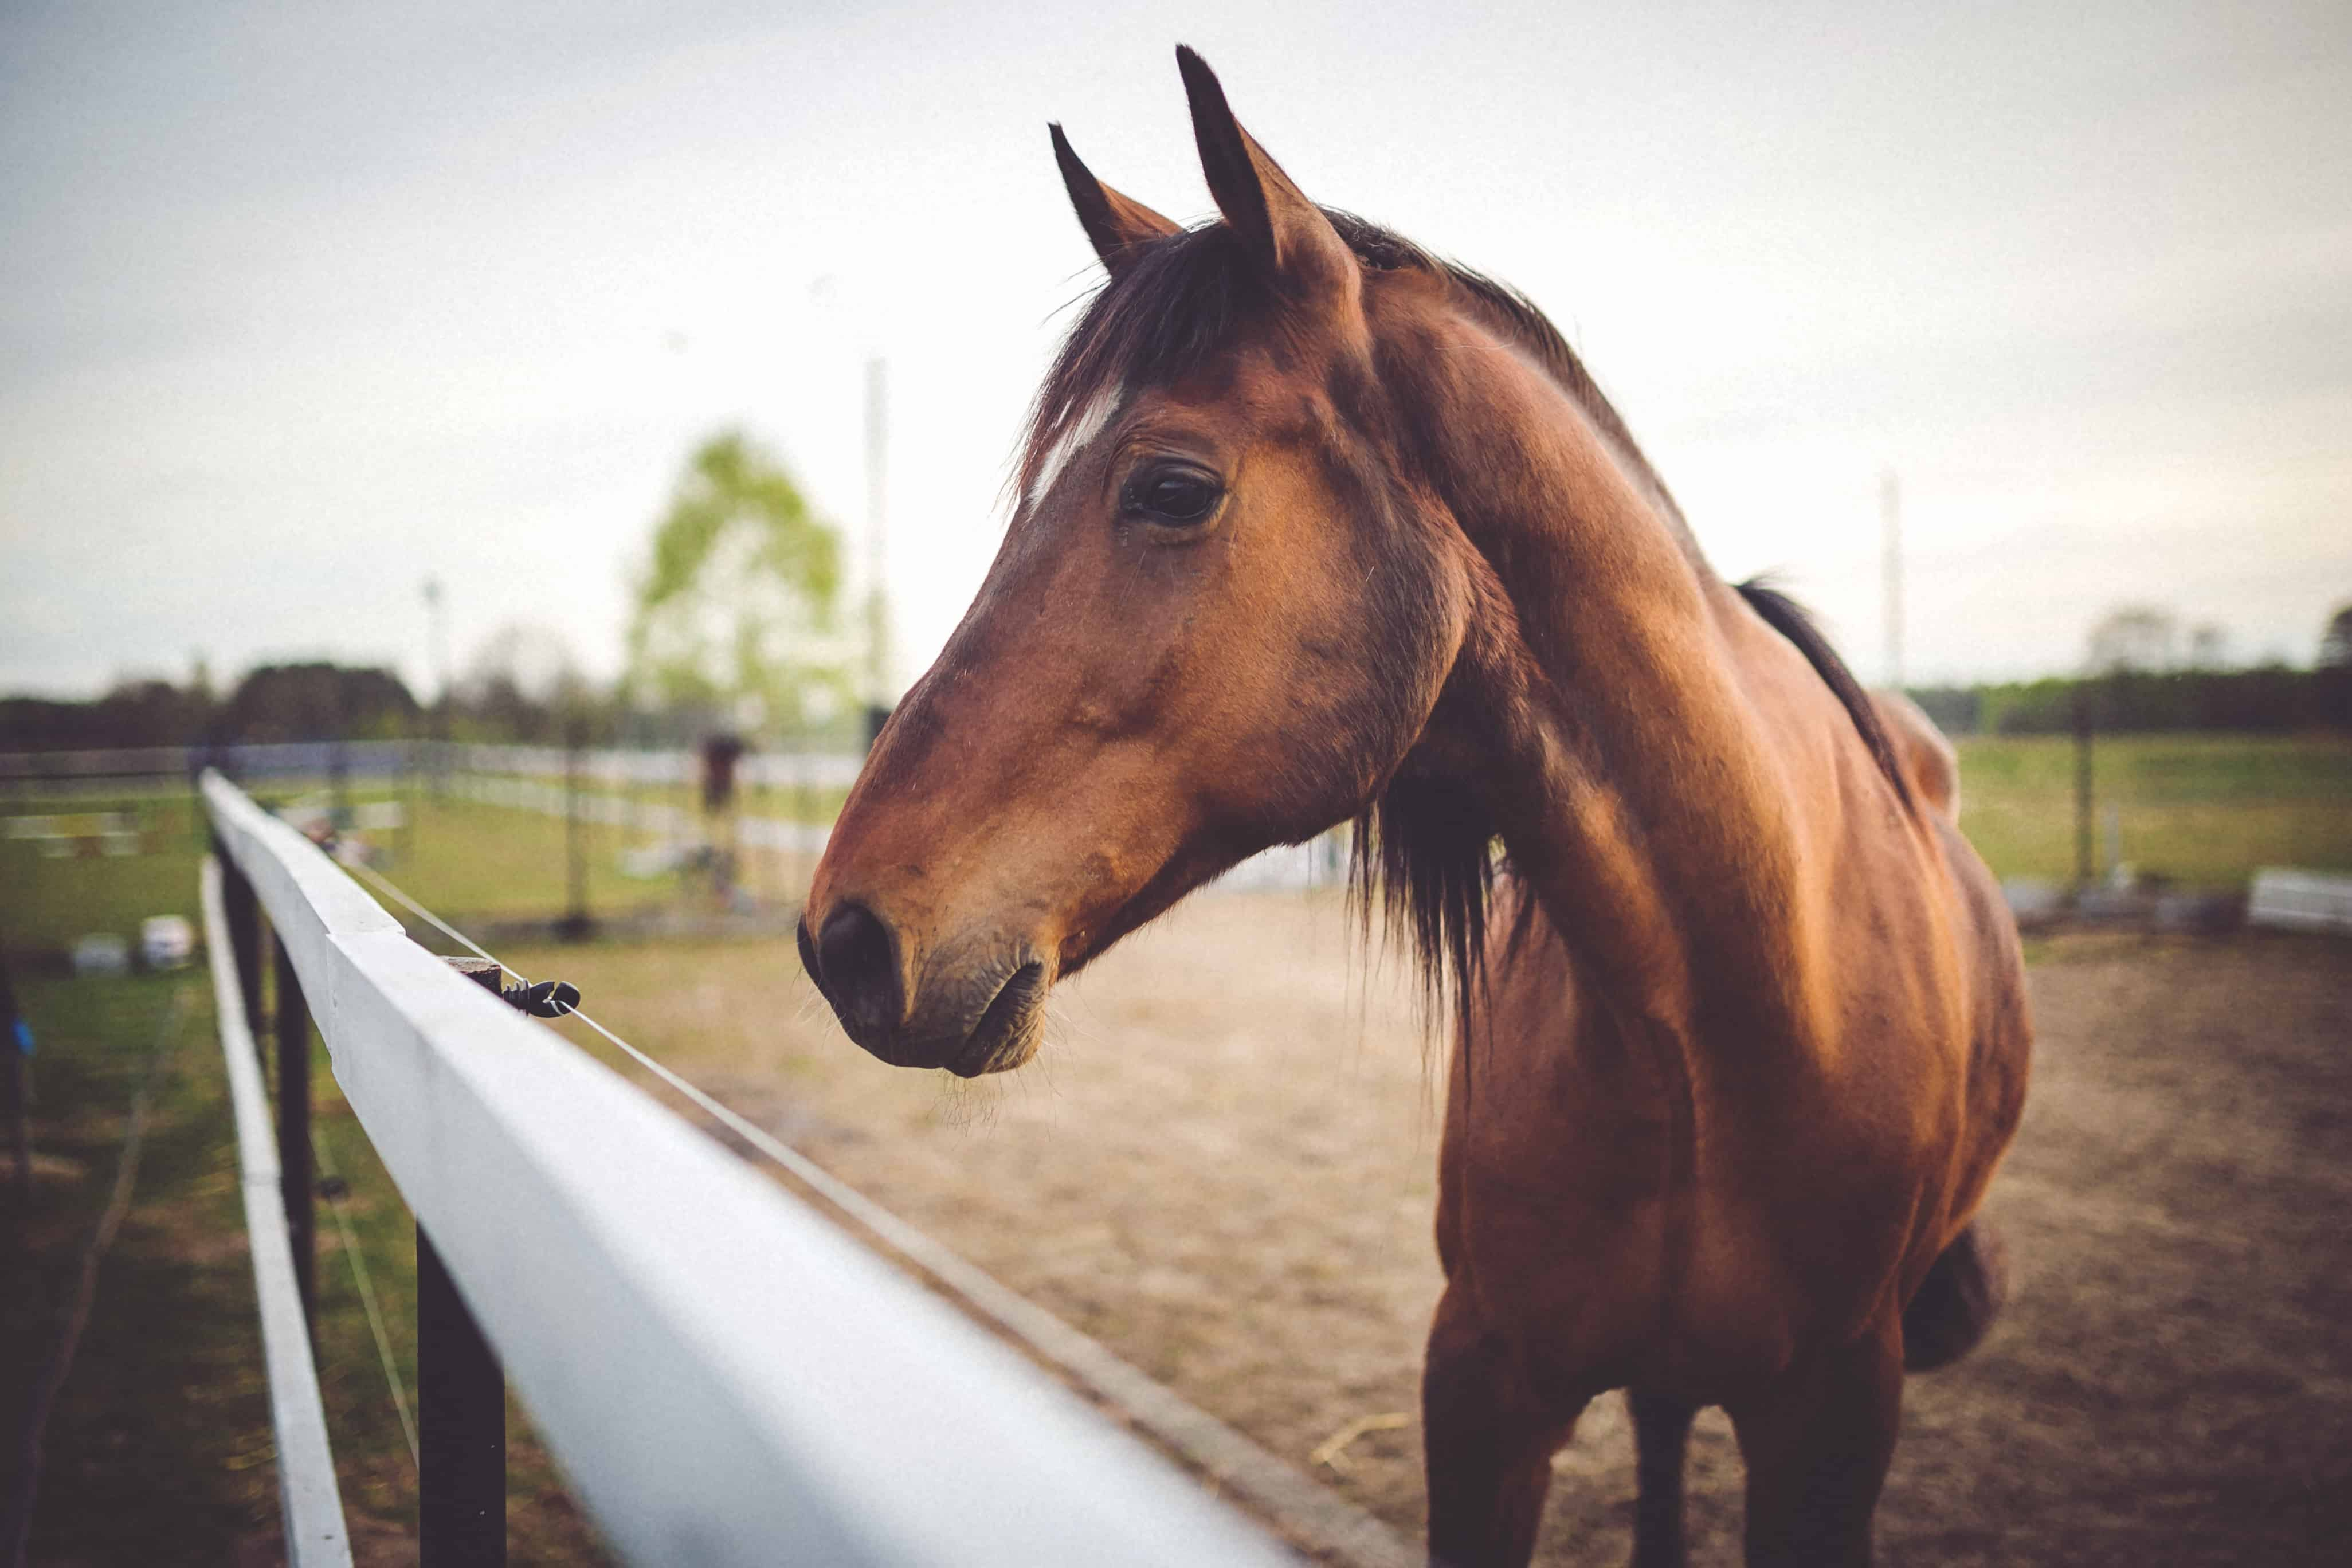 Thinking About Starting An Equine Business?